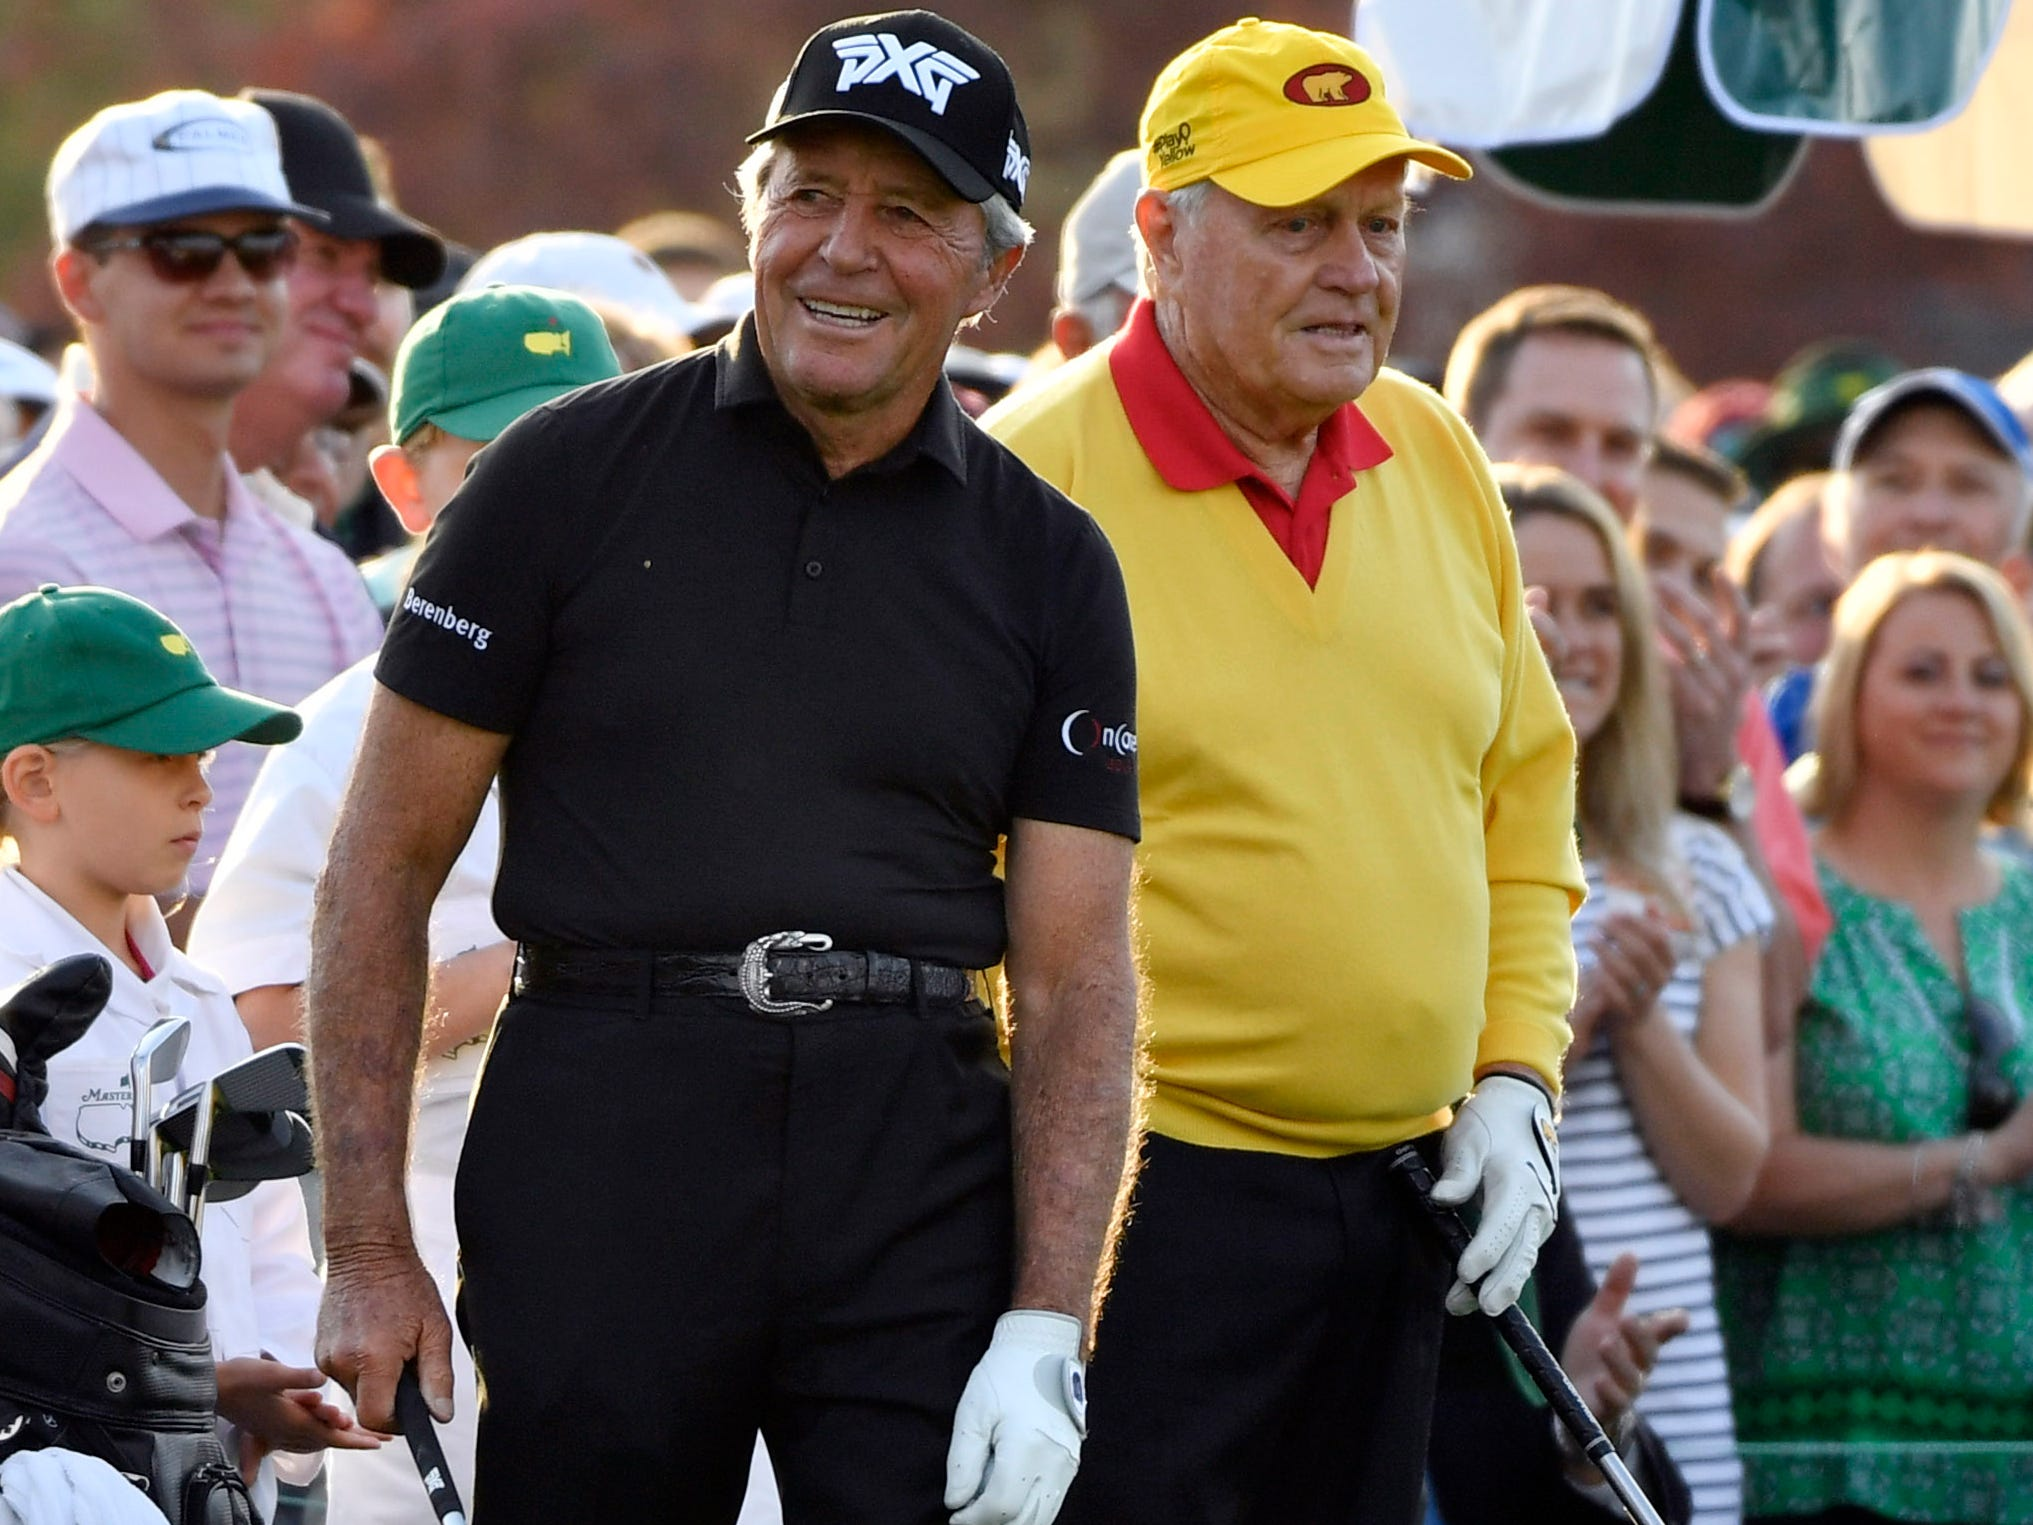 Apr 11, 2019; Augusta, GA, USA; Gary Player (left) and Jack Nicklaus (right) on the 1st tee during the first round of The Masters golf tournament at Augusta National Golf Club.